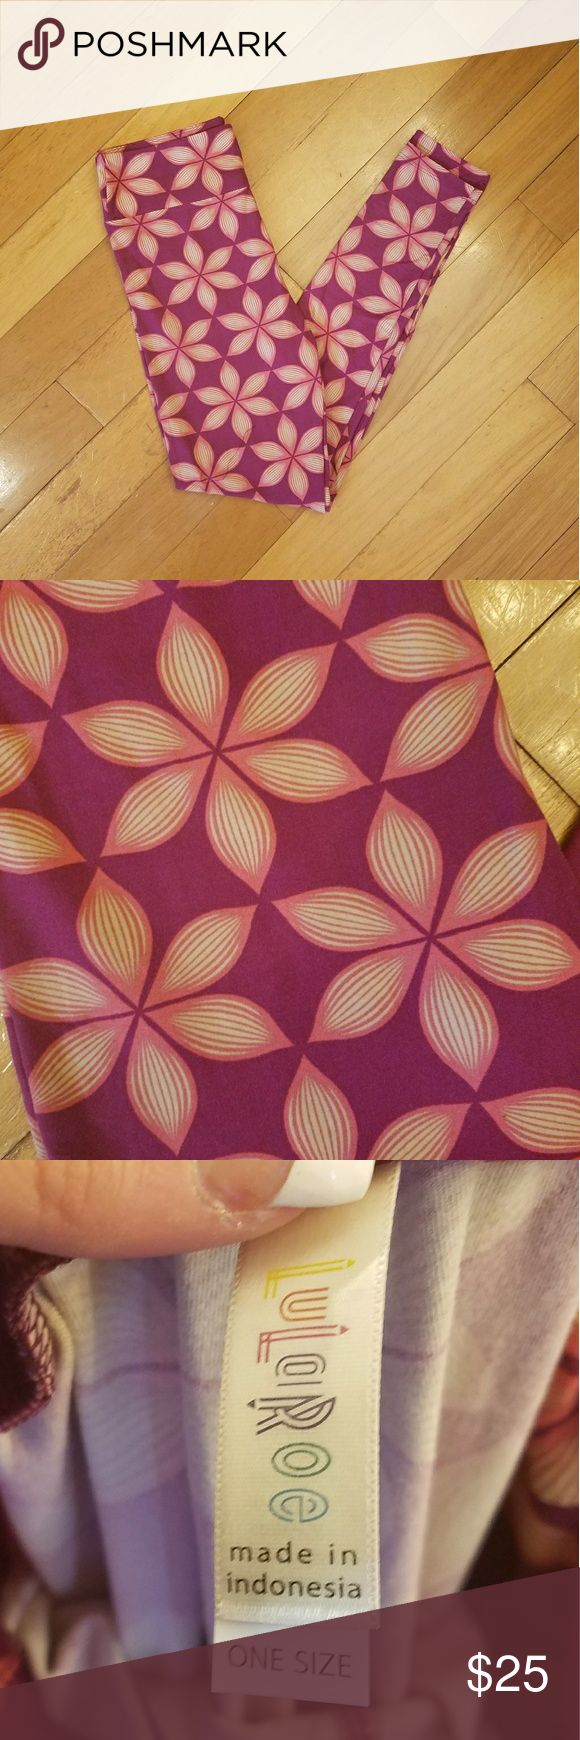 Lularoe OS Leggings Brand NEW! Never worn never tried on. Buttery soft! Deep magenta background with pink and white flowers. Bright and pretty! Smoke free and pet free home. Original price includes tax. LuLaRoe Pants Leggings